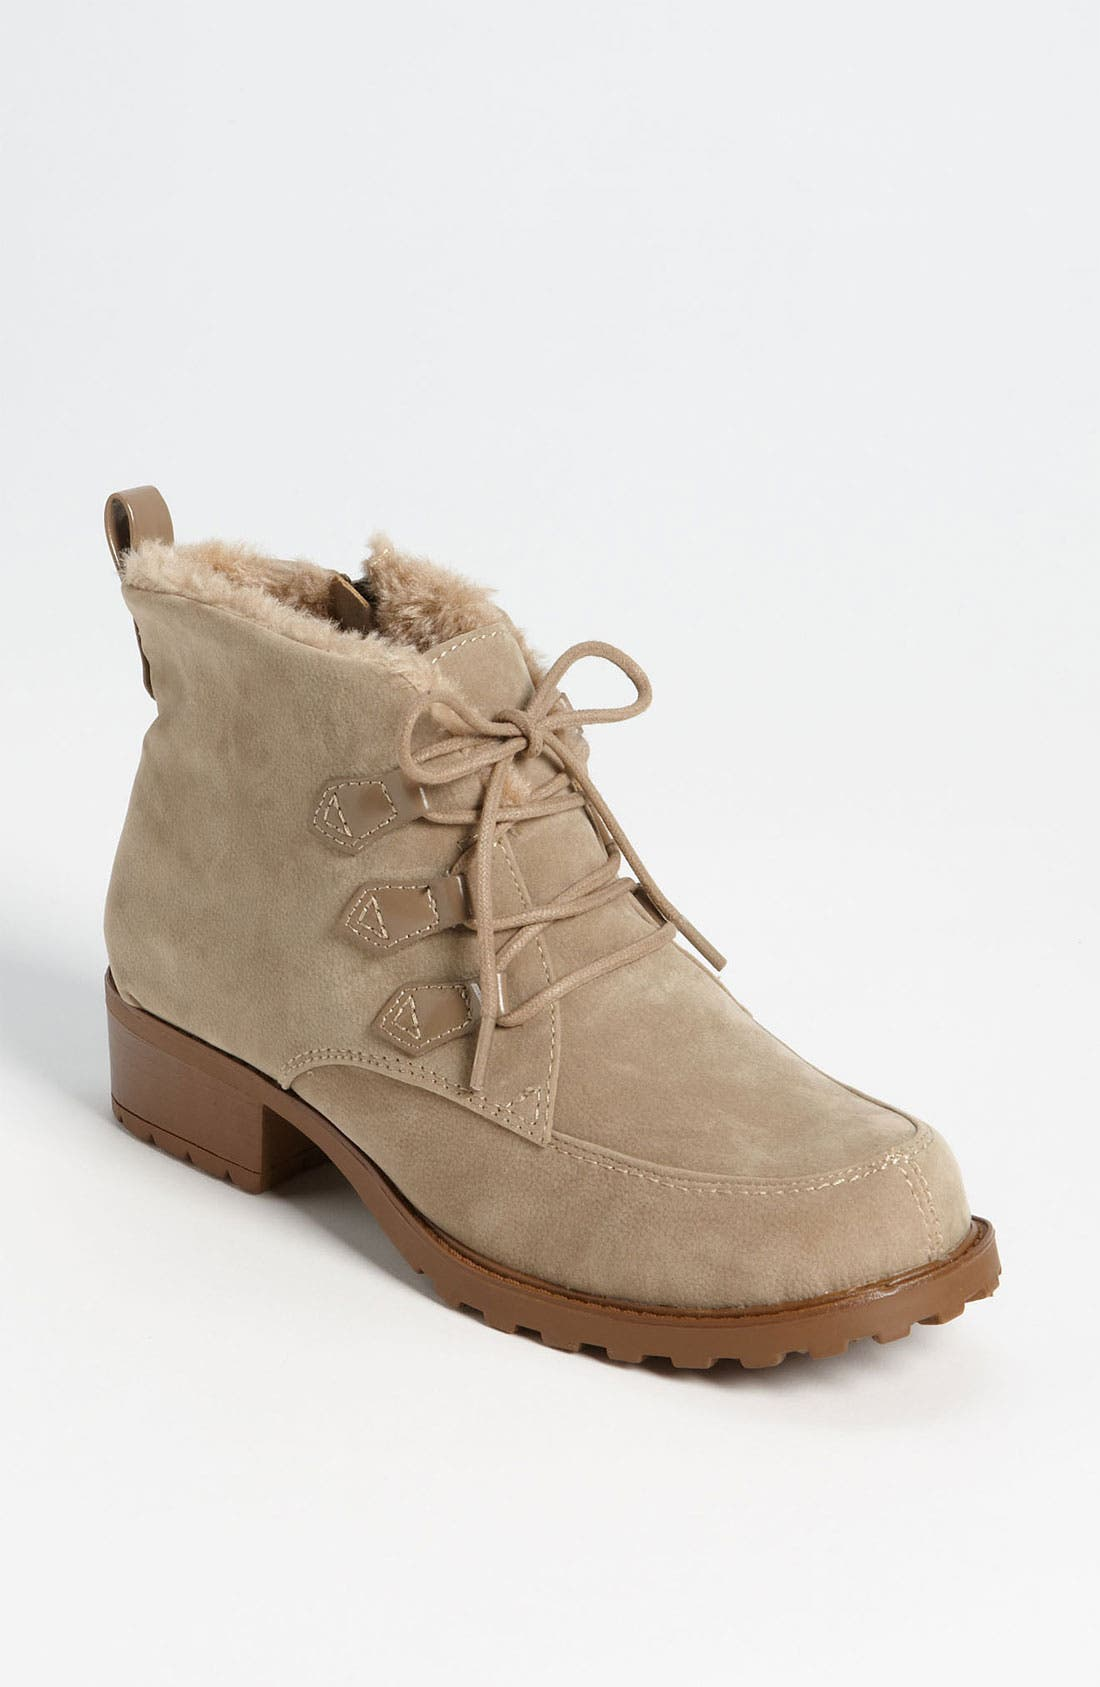 Main Image - Trotters 'Snowflake' Boot